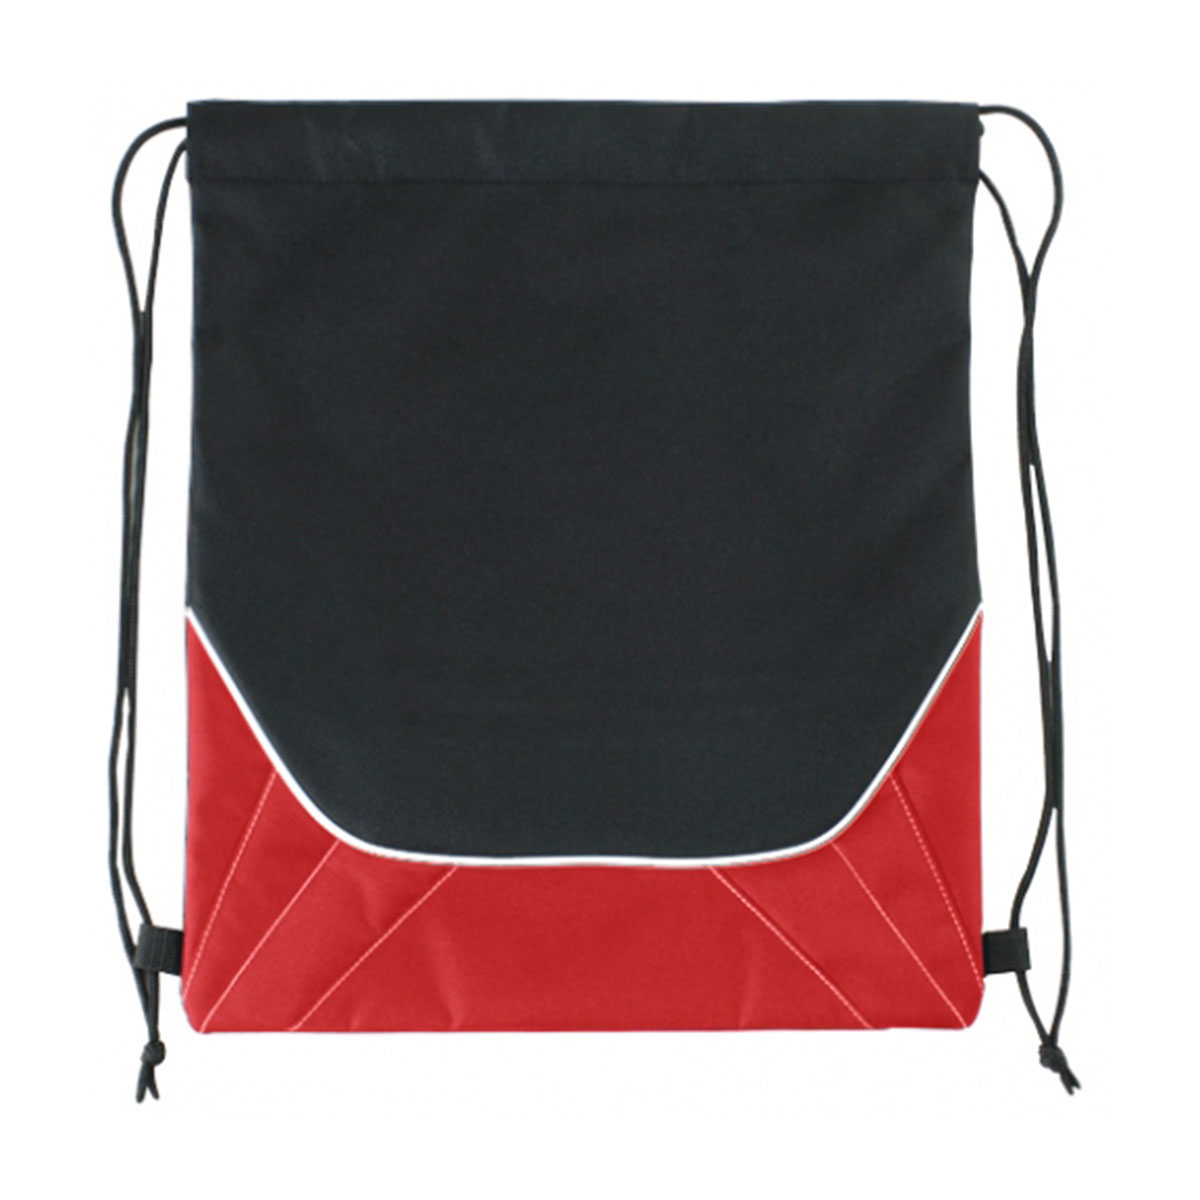 Tycoon Backsack-Black / Red